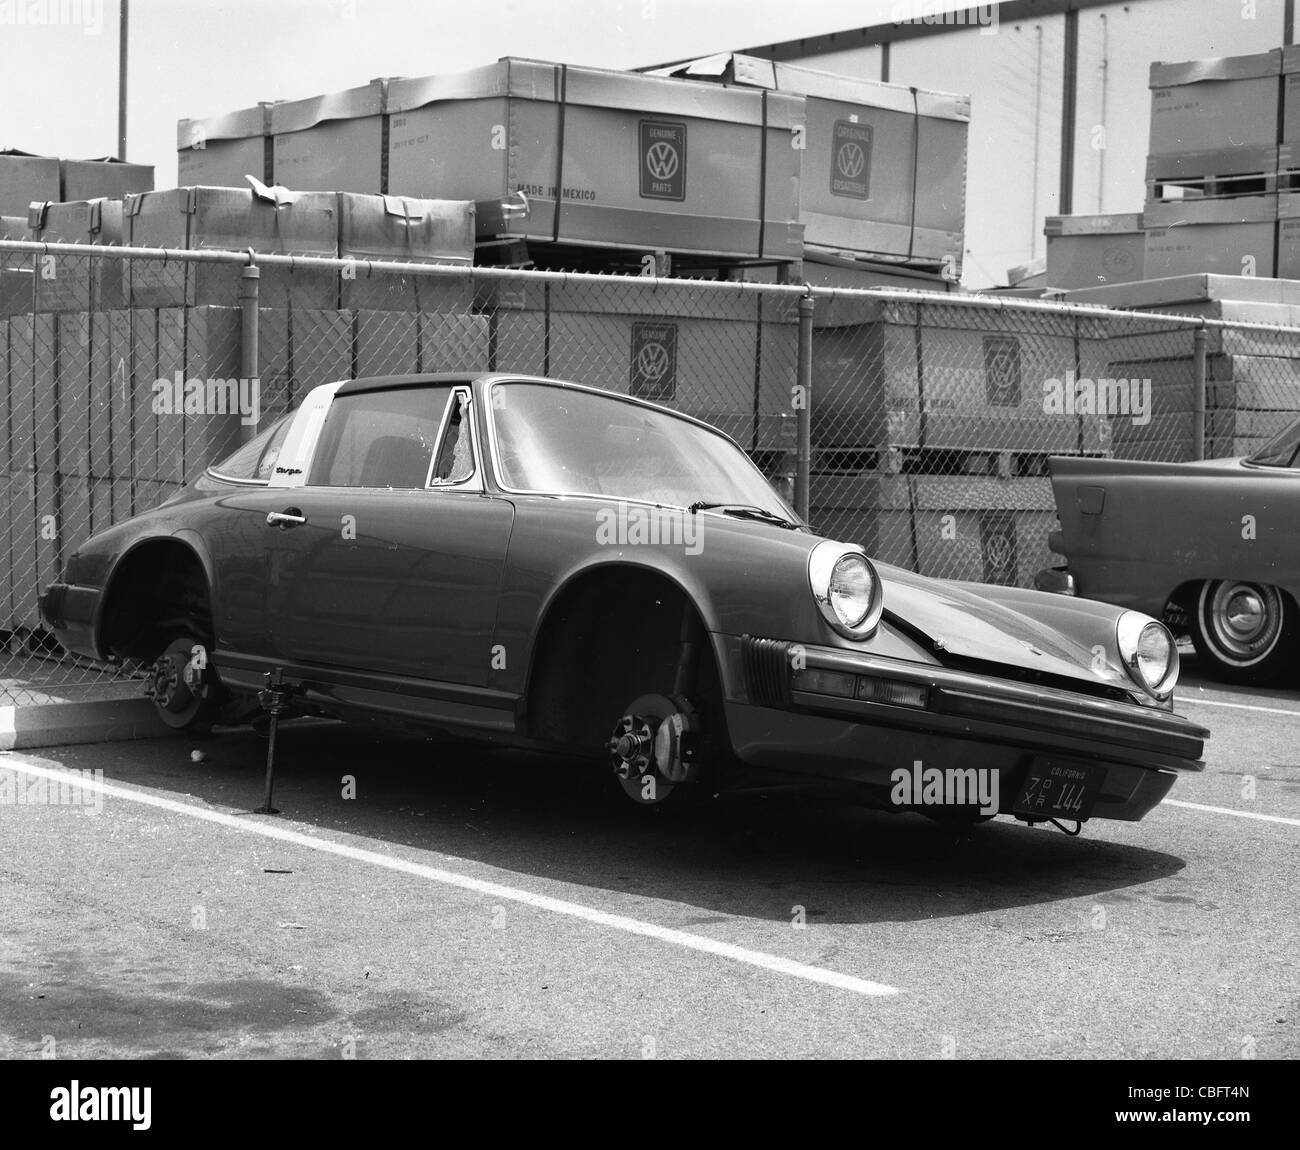 porsche carrera 1970s model parked with wheels missing german sports car - Stock Image